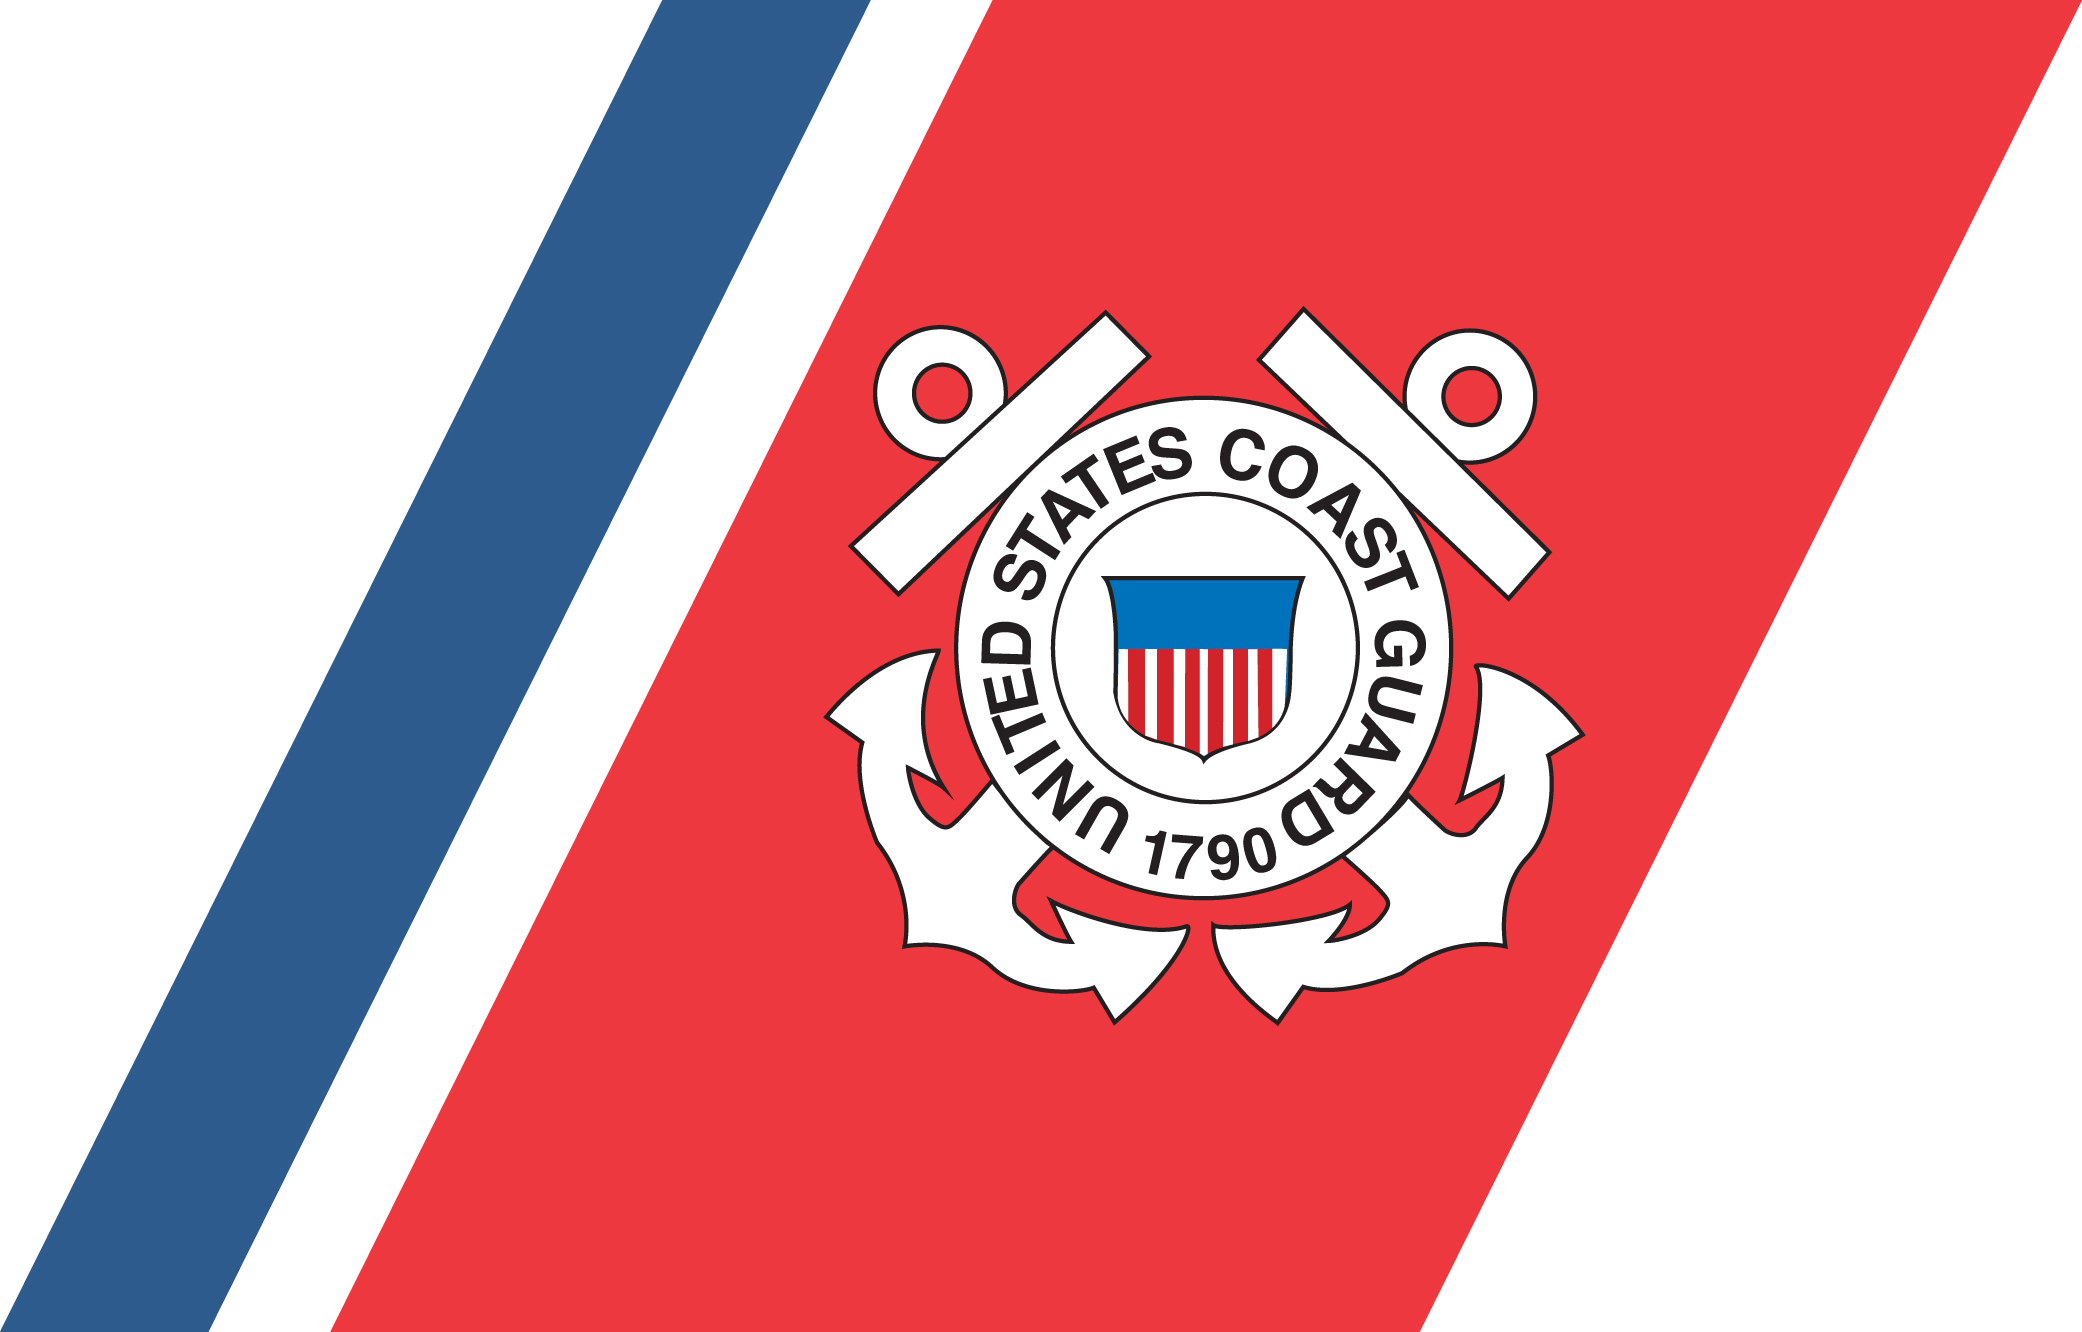 File:USCG Mark.jpg - Wikimedia Commons